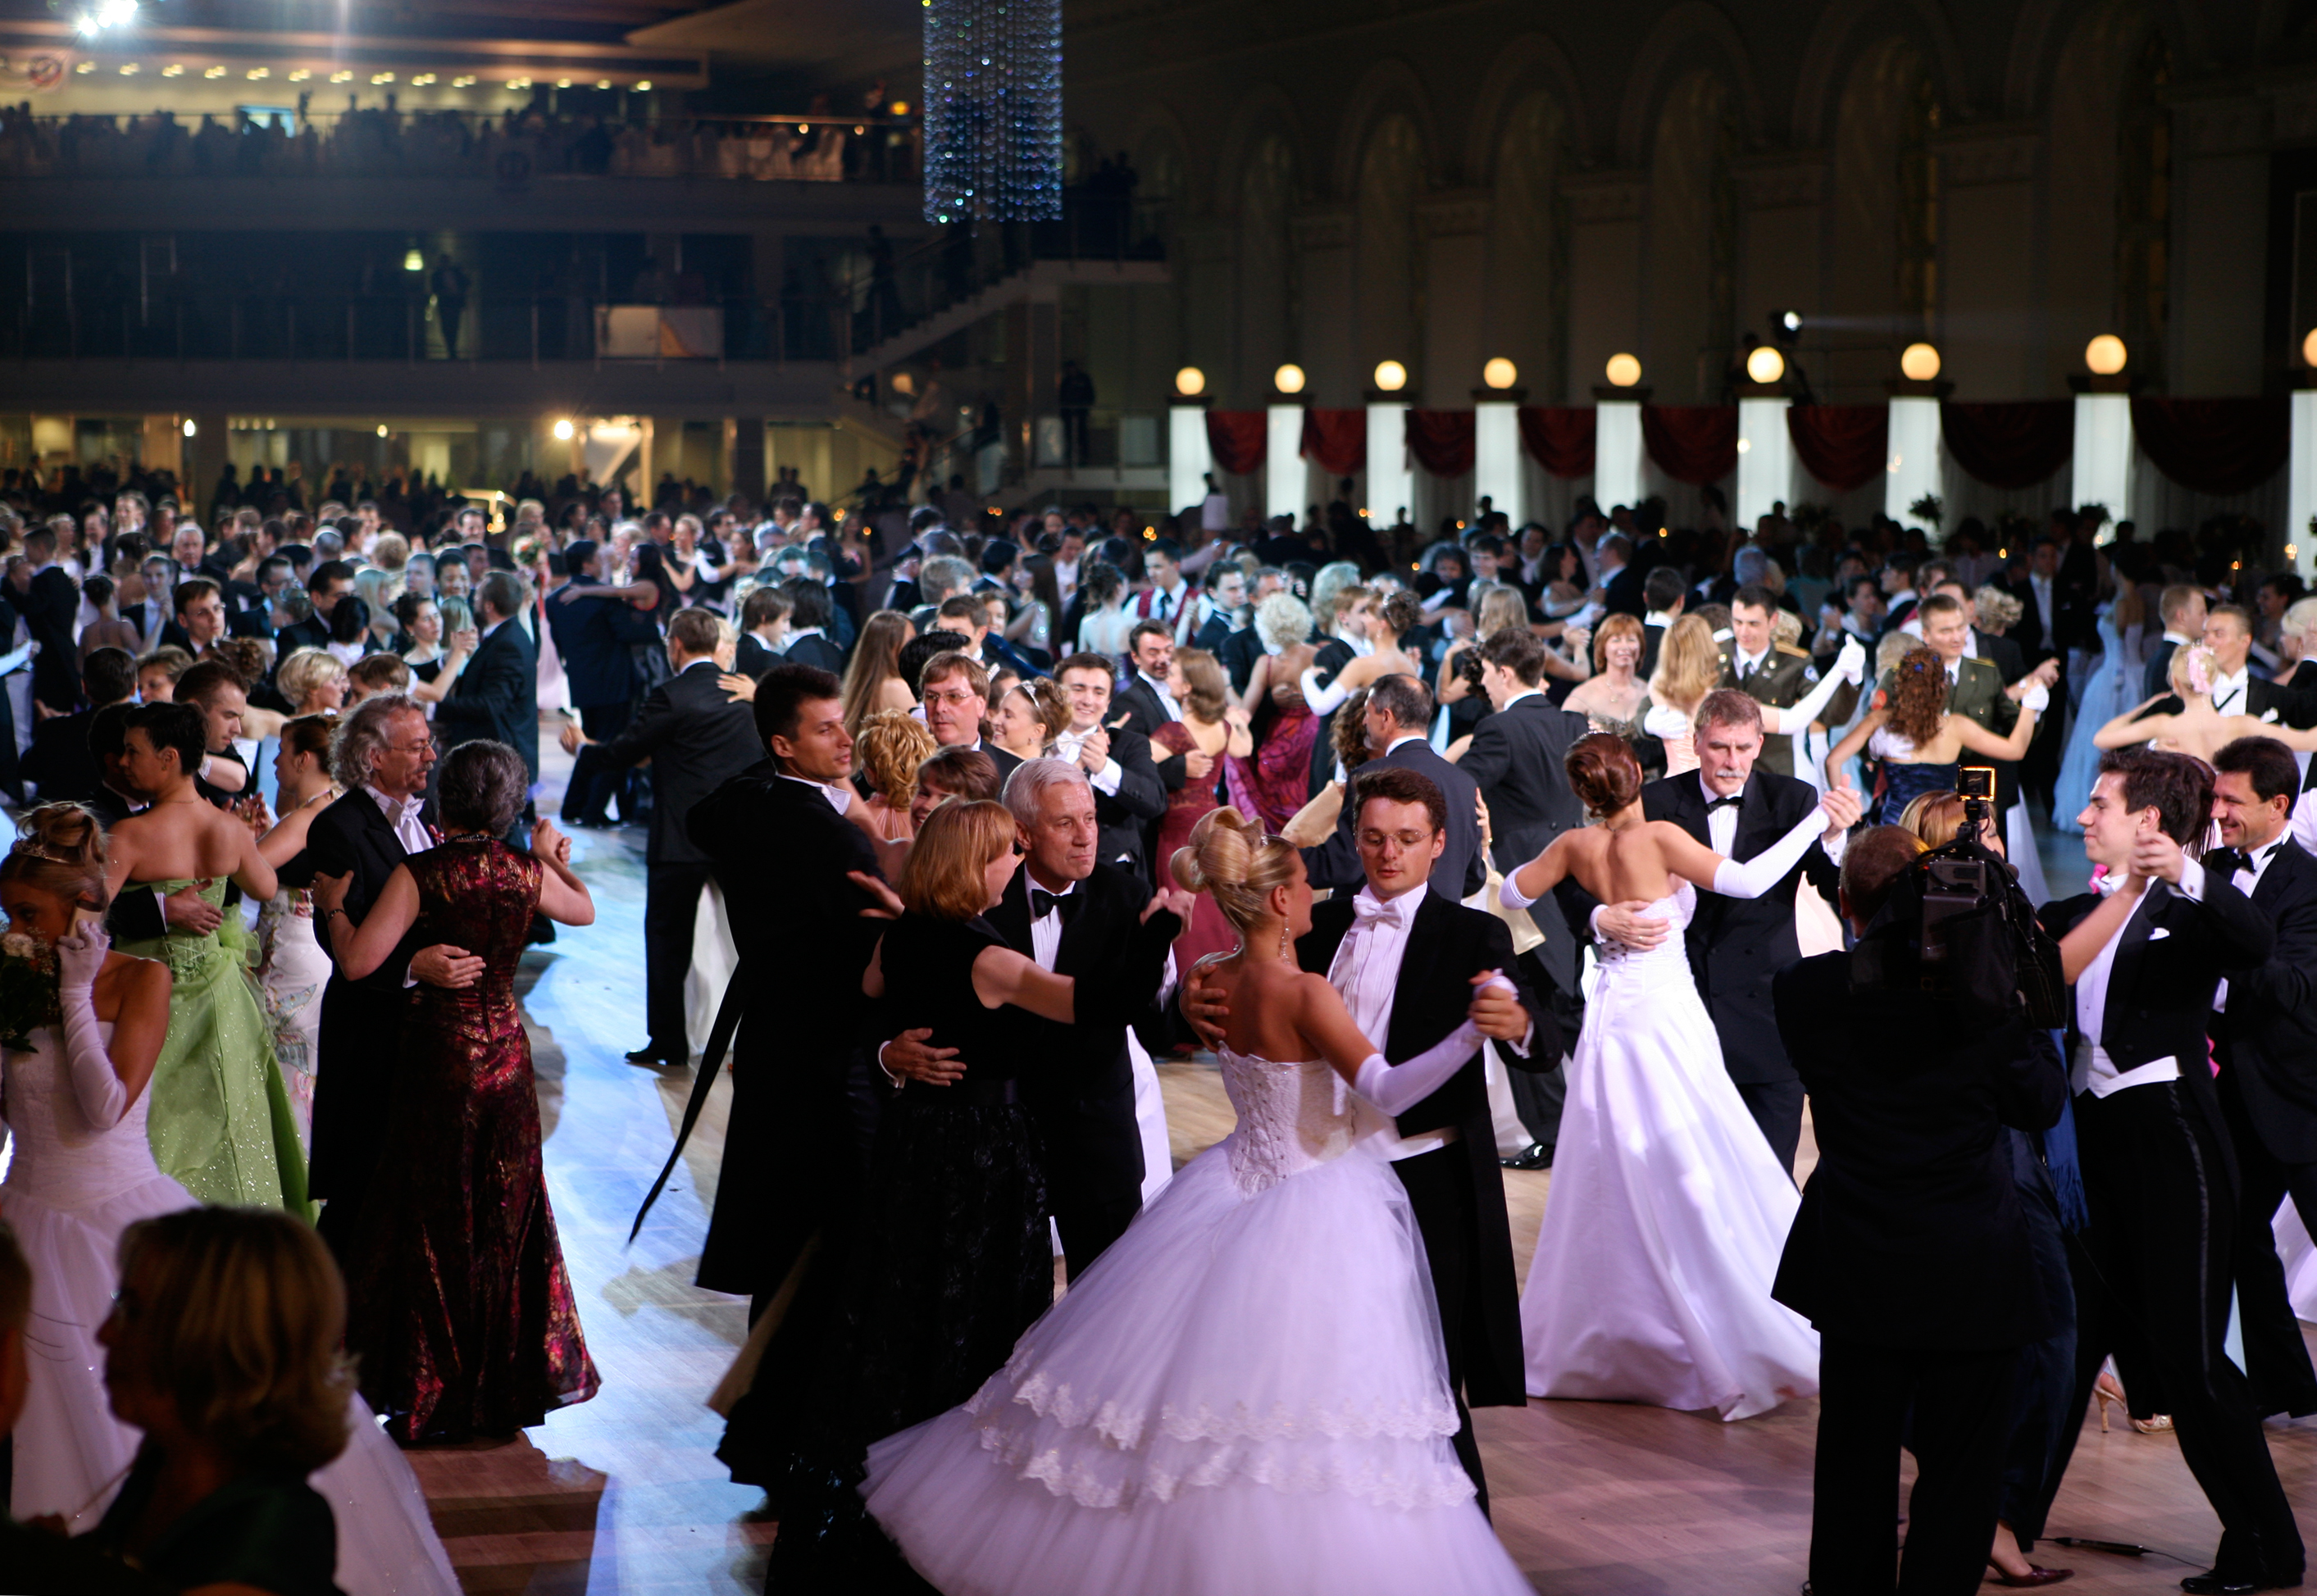 History of ballroom dance in the philippines